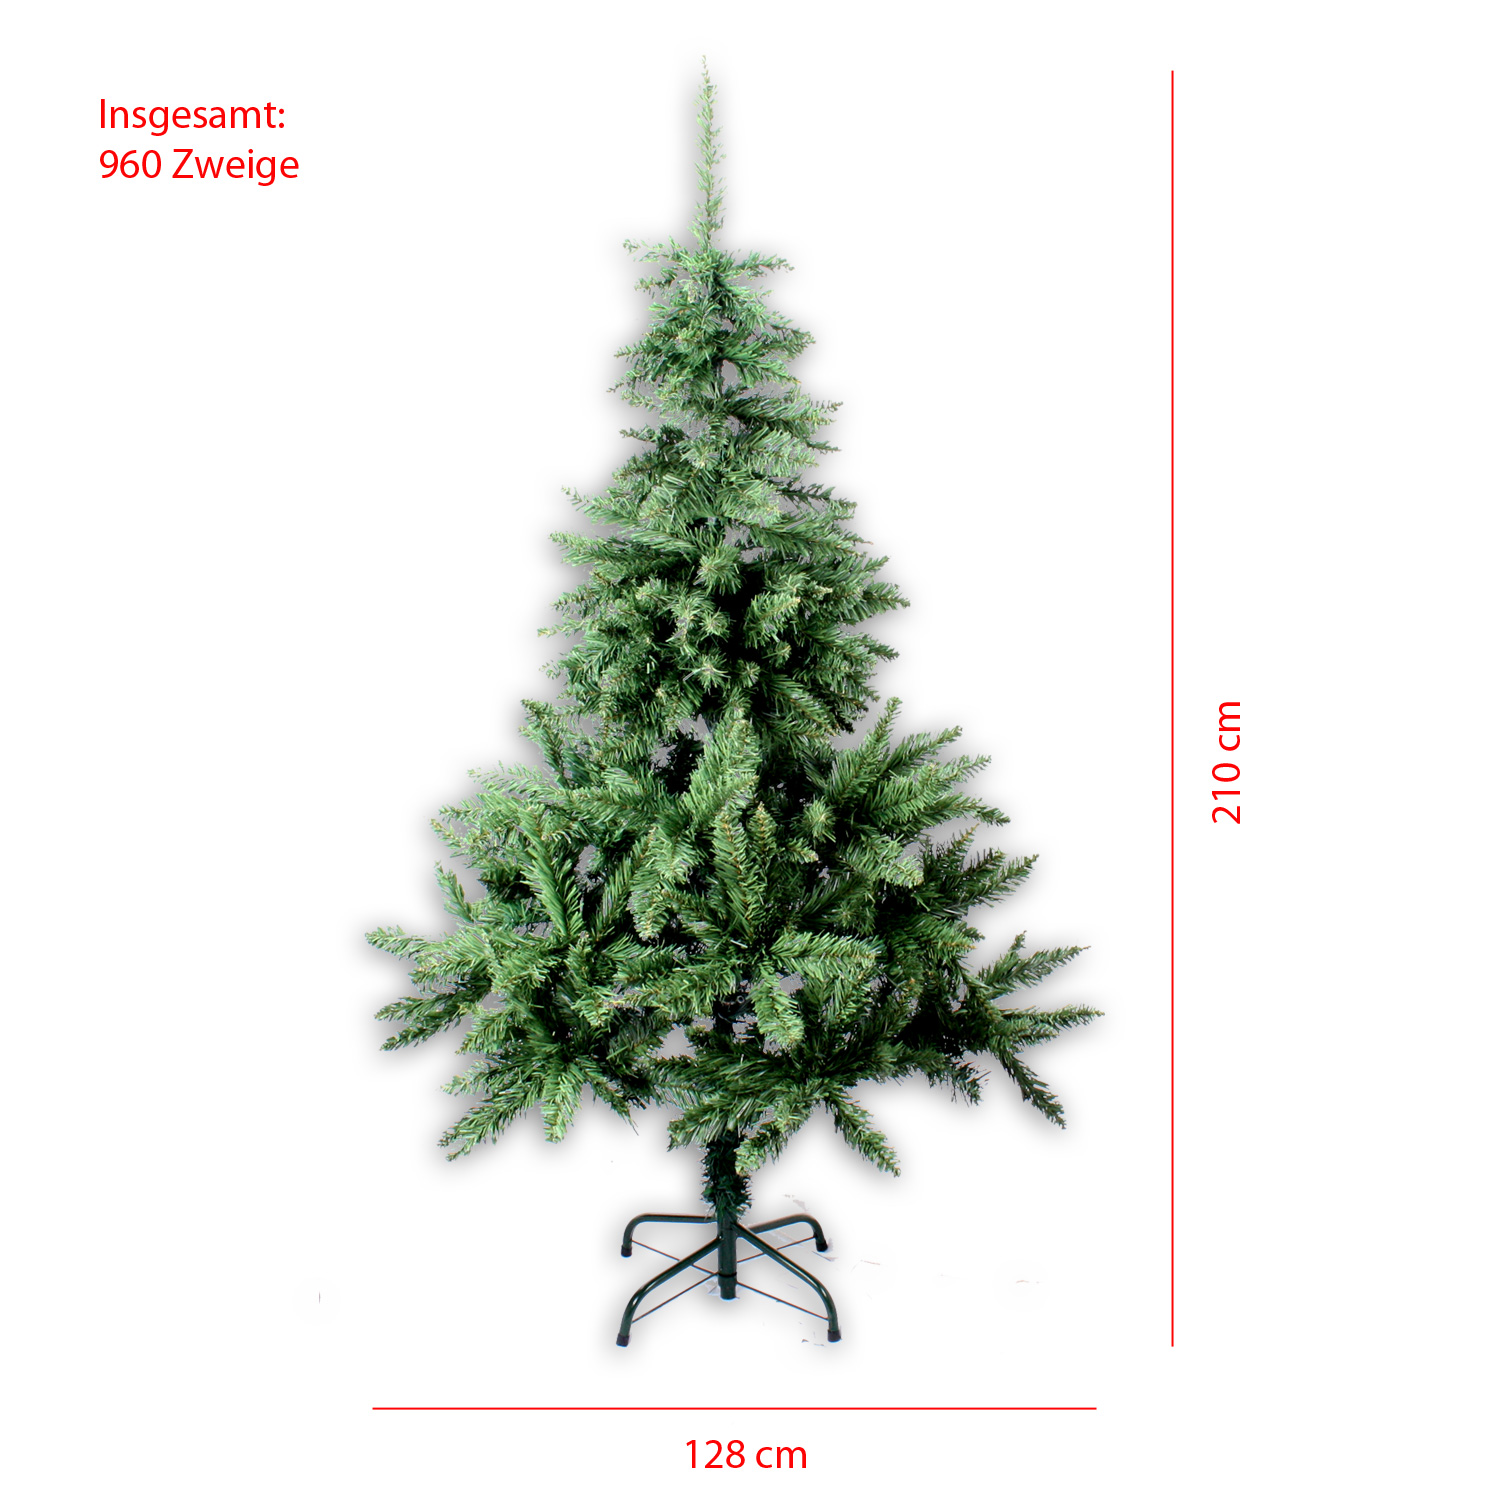 k nstlicher weihnachtsbaum 90 210 cm christbaum 100 960 zweige tannenbaum tirol ebay. Black Bedroom Furniture Sets. Home Design Ideas